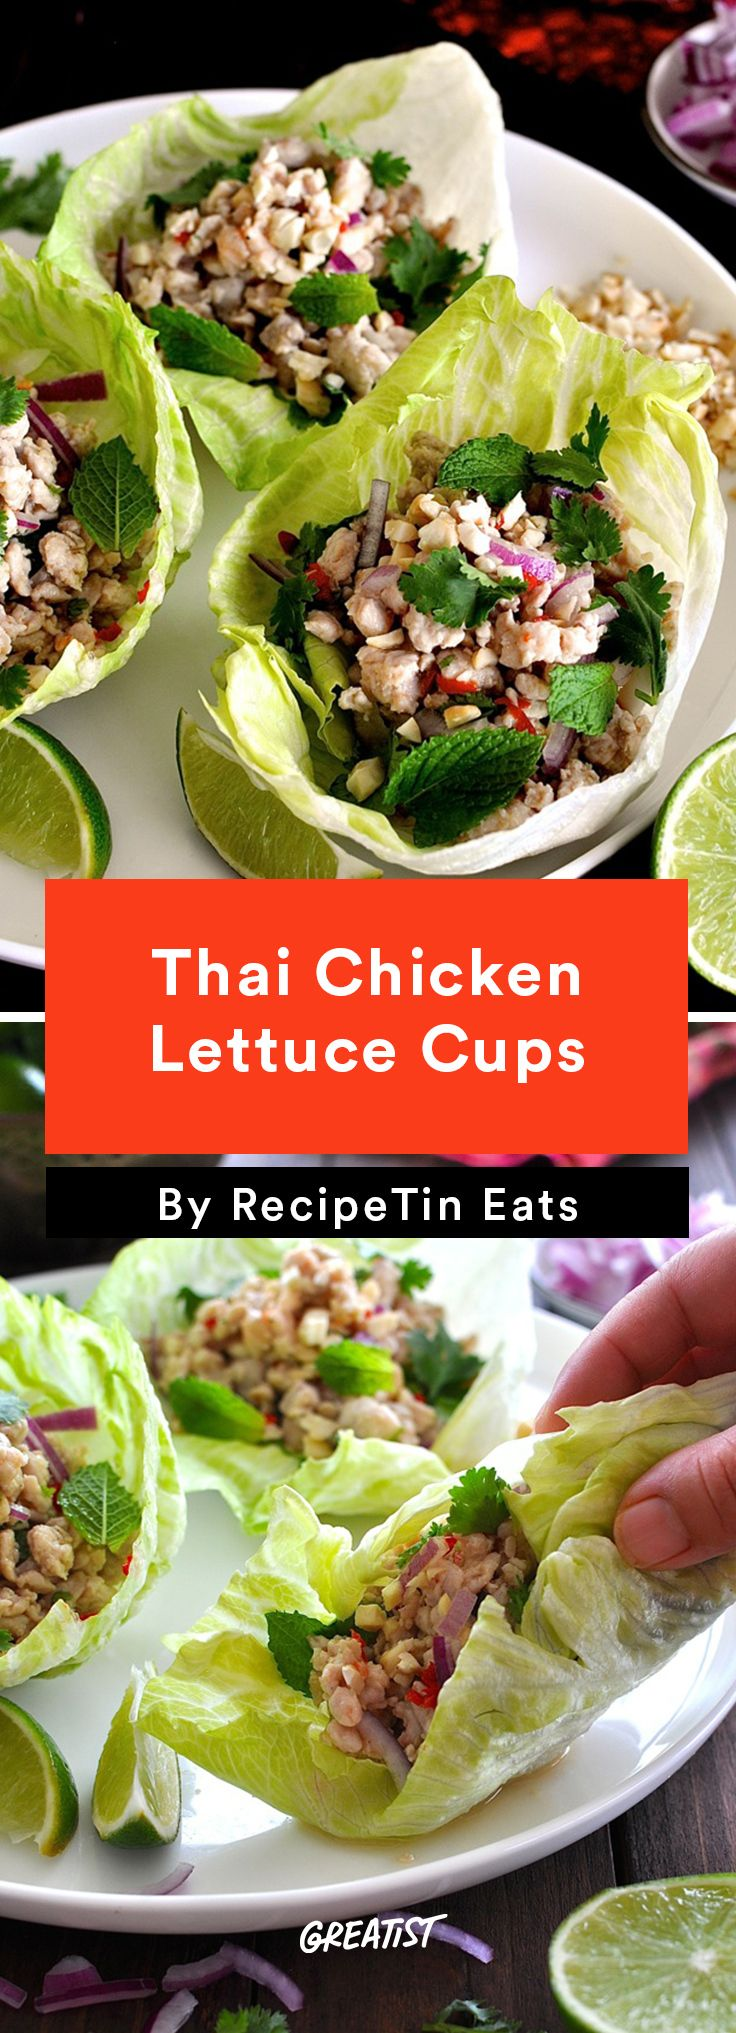 3. Thai Chicken Lettuce Cups #healthy #chicken #recipes http://greatist.com/eat/easy-chicken-recipes-that-are-tasty-af